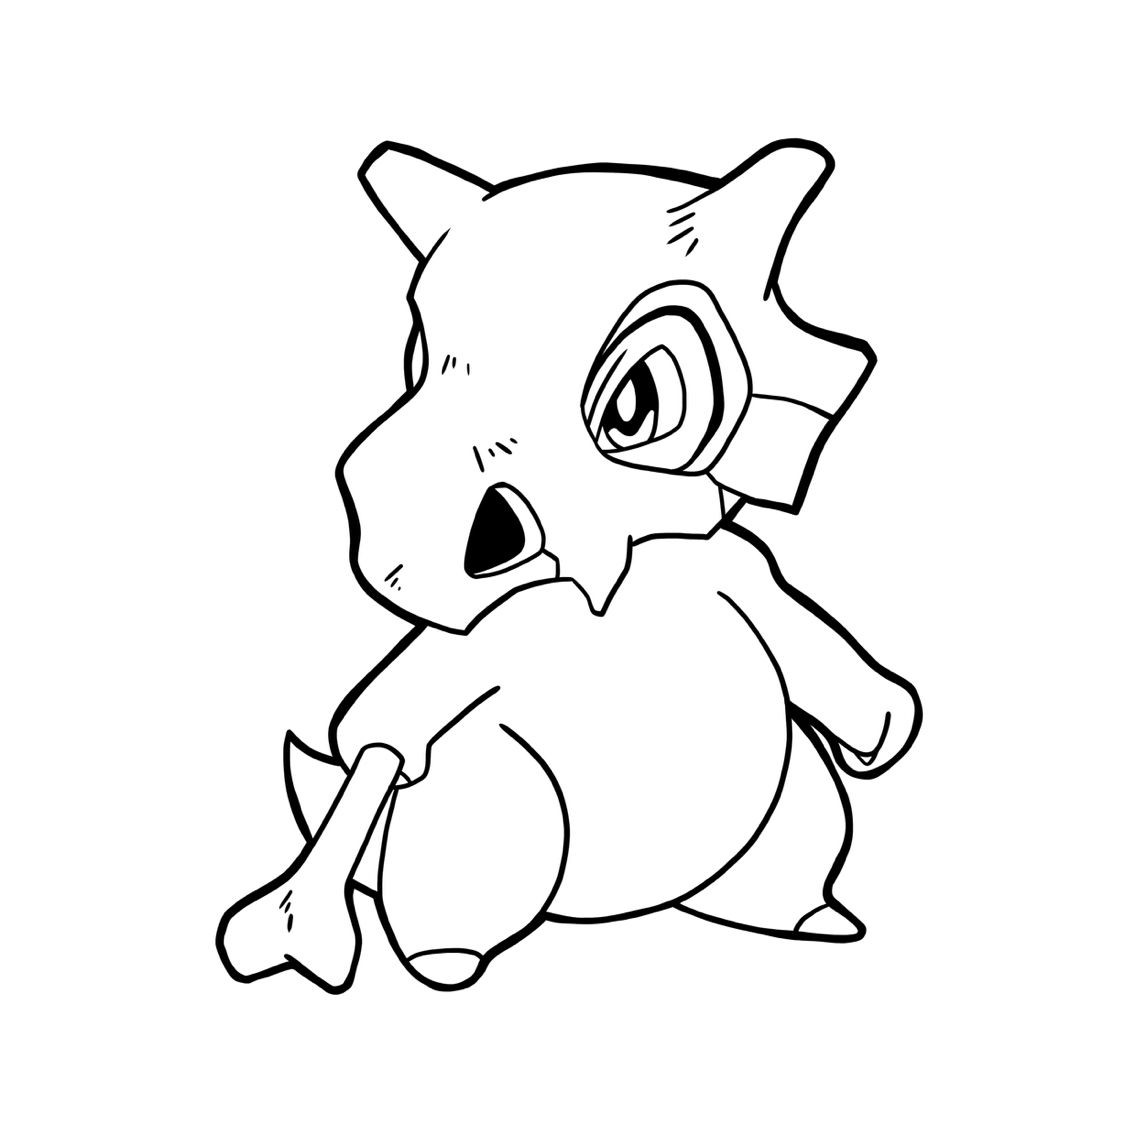 1136x1136 Pokemon Latias And Latios Coloring Page Cubone Pages